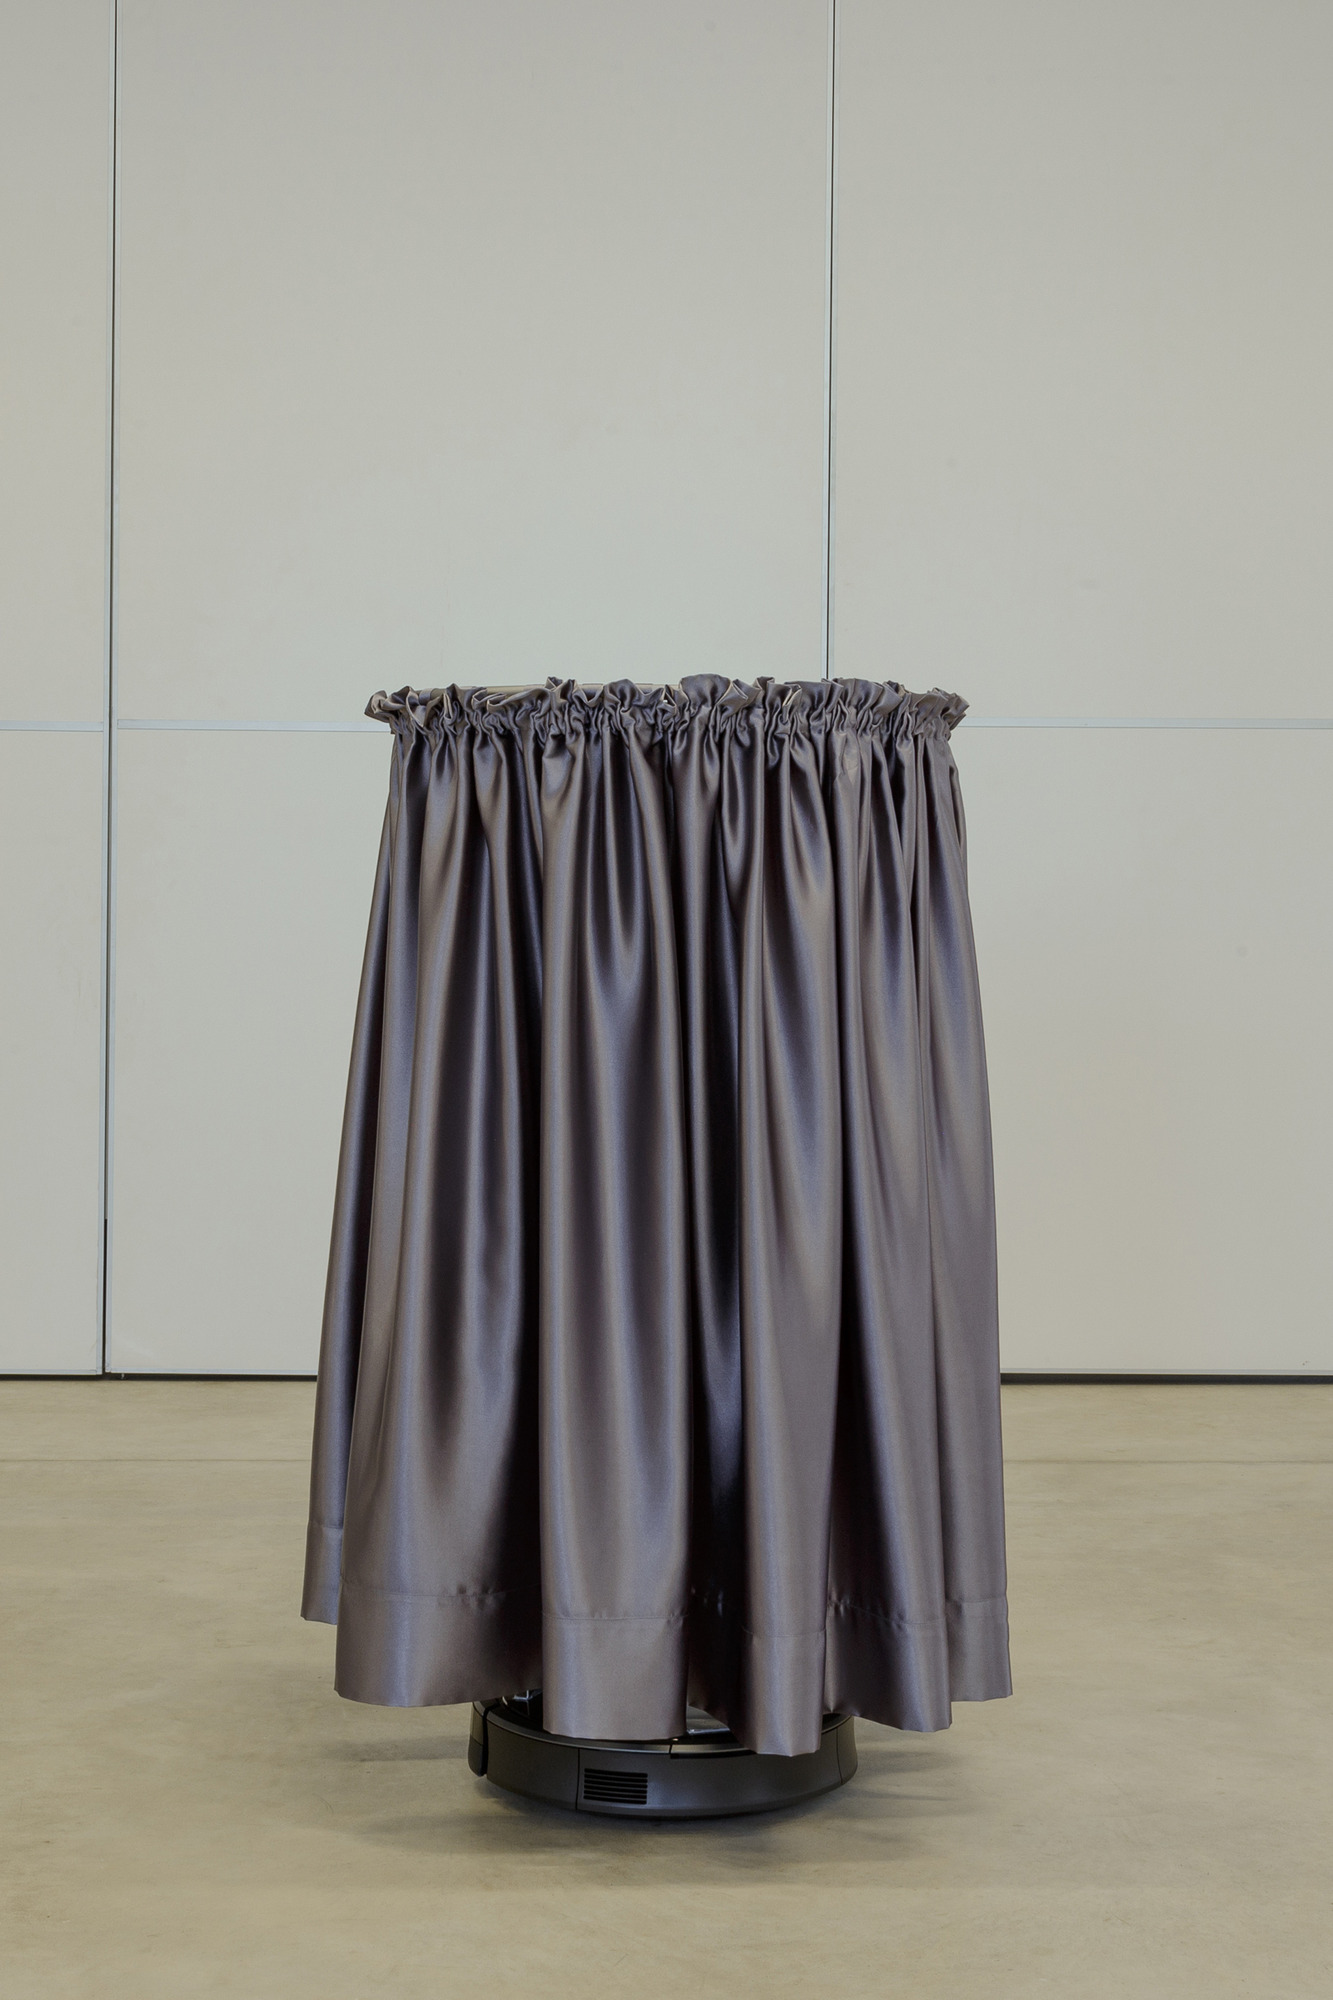 'The Changing Room', Berglind Jo¦üna, 2015